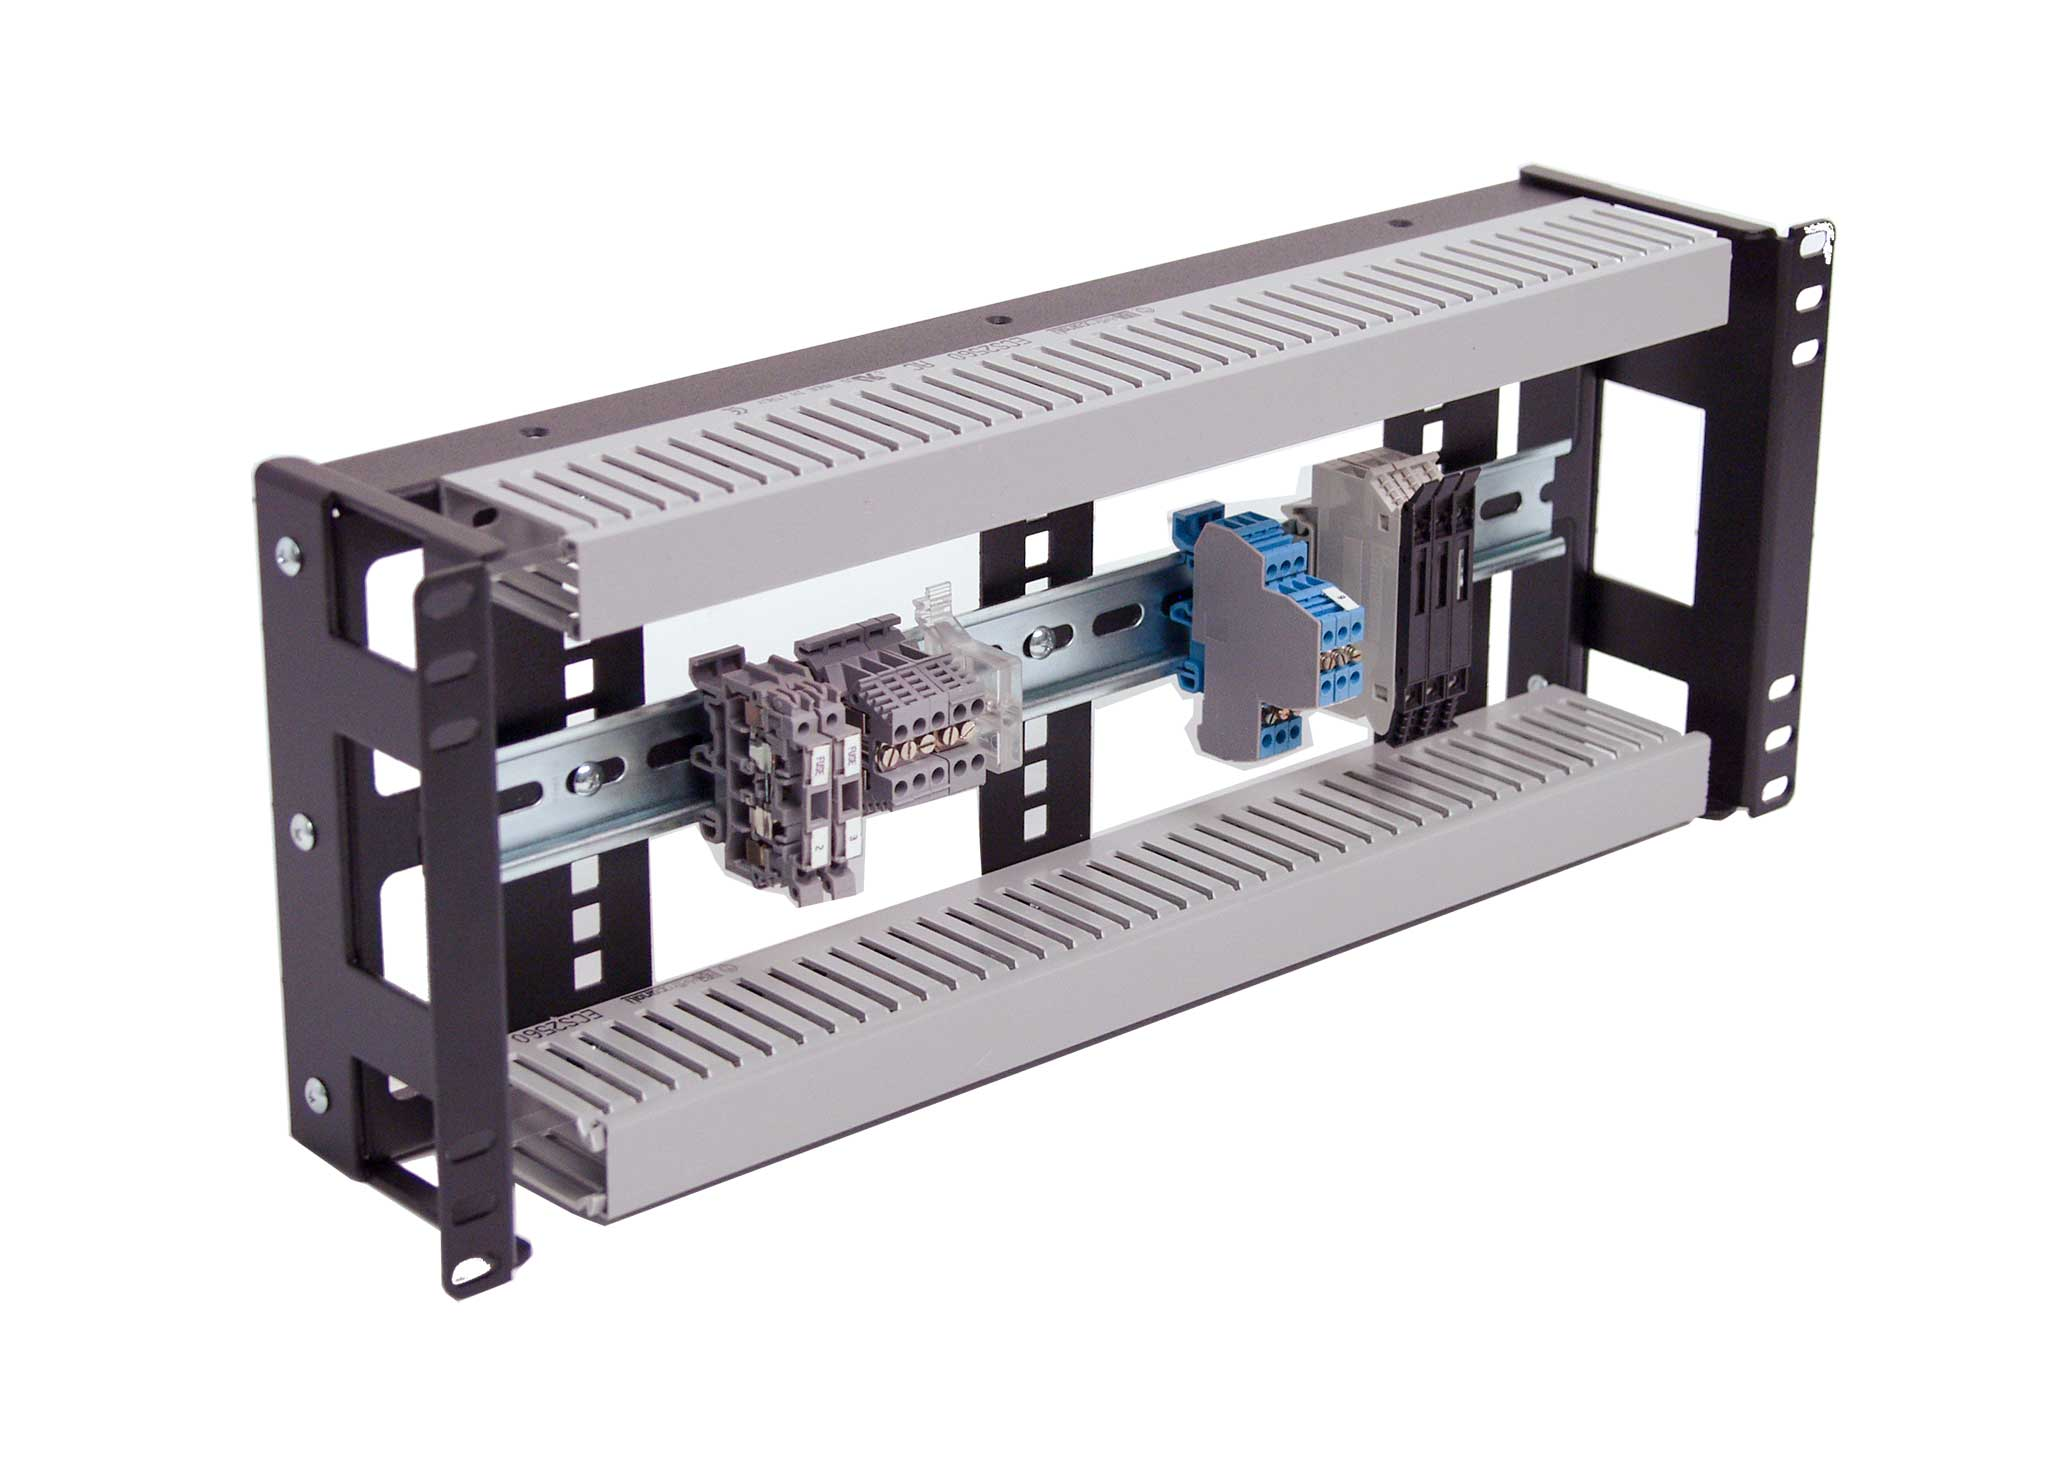 4U DIN Rail ultra compact enclosures for standard 19